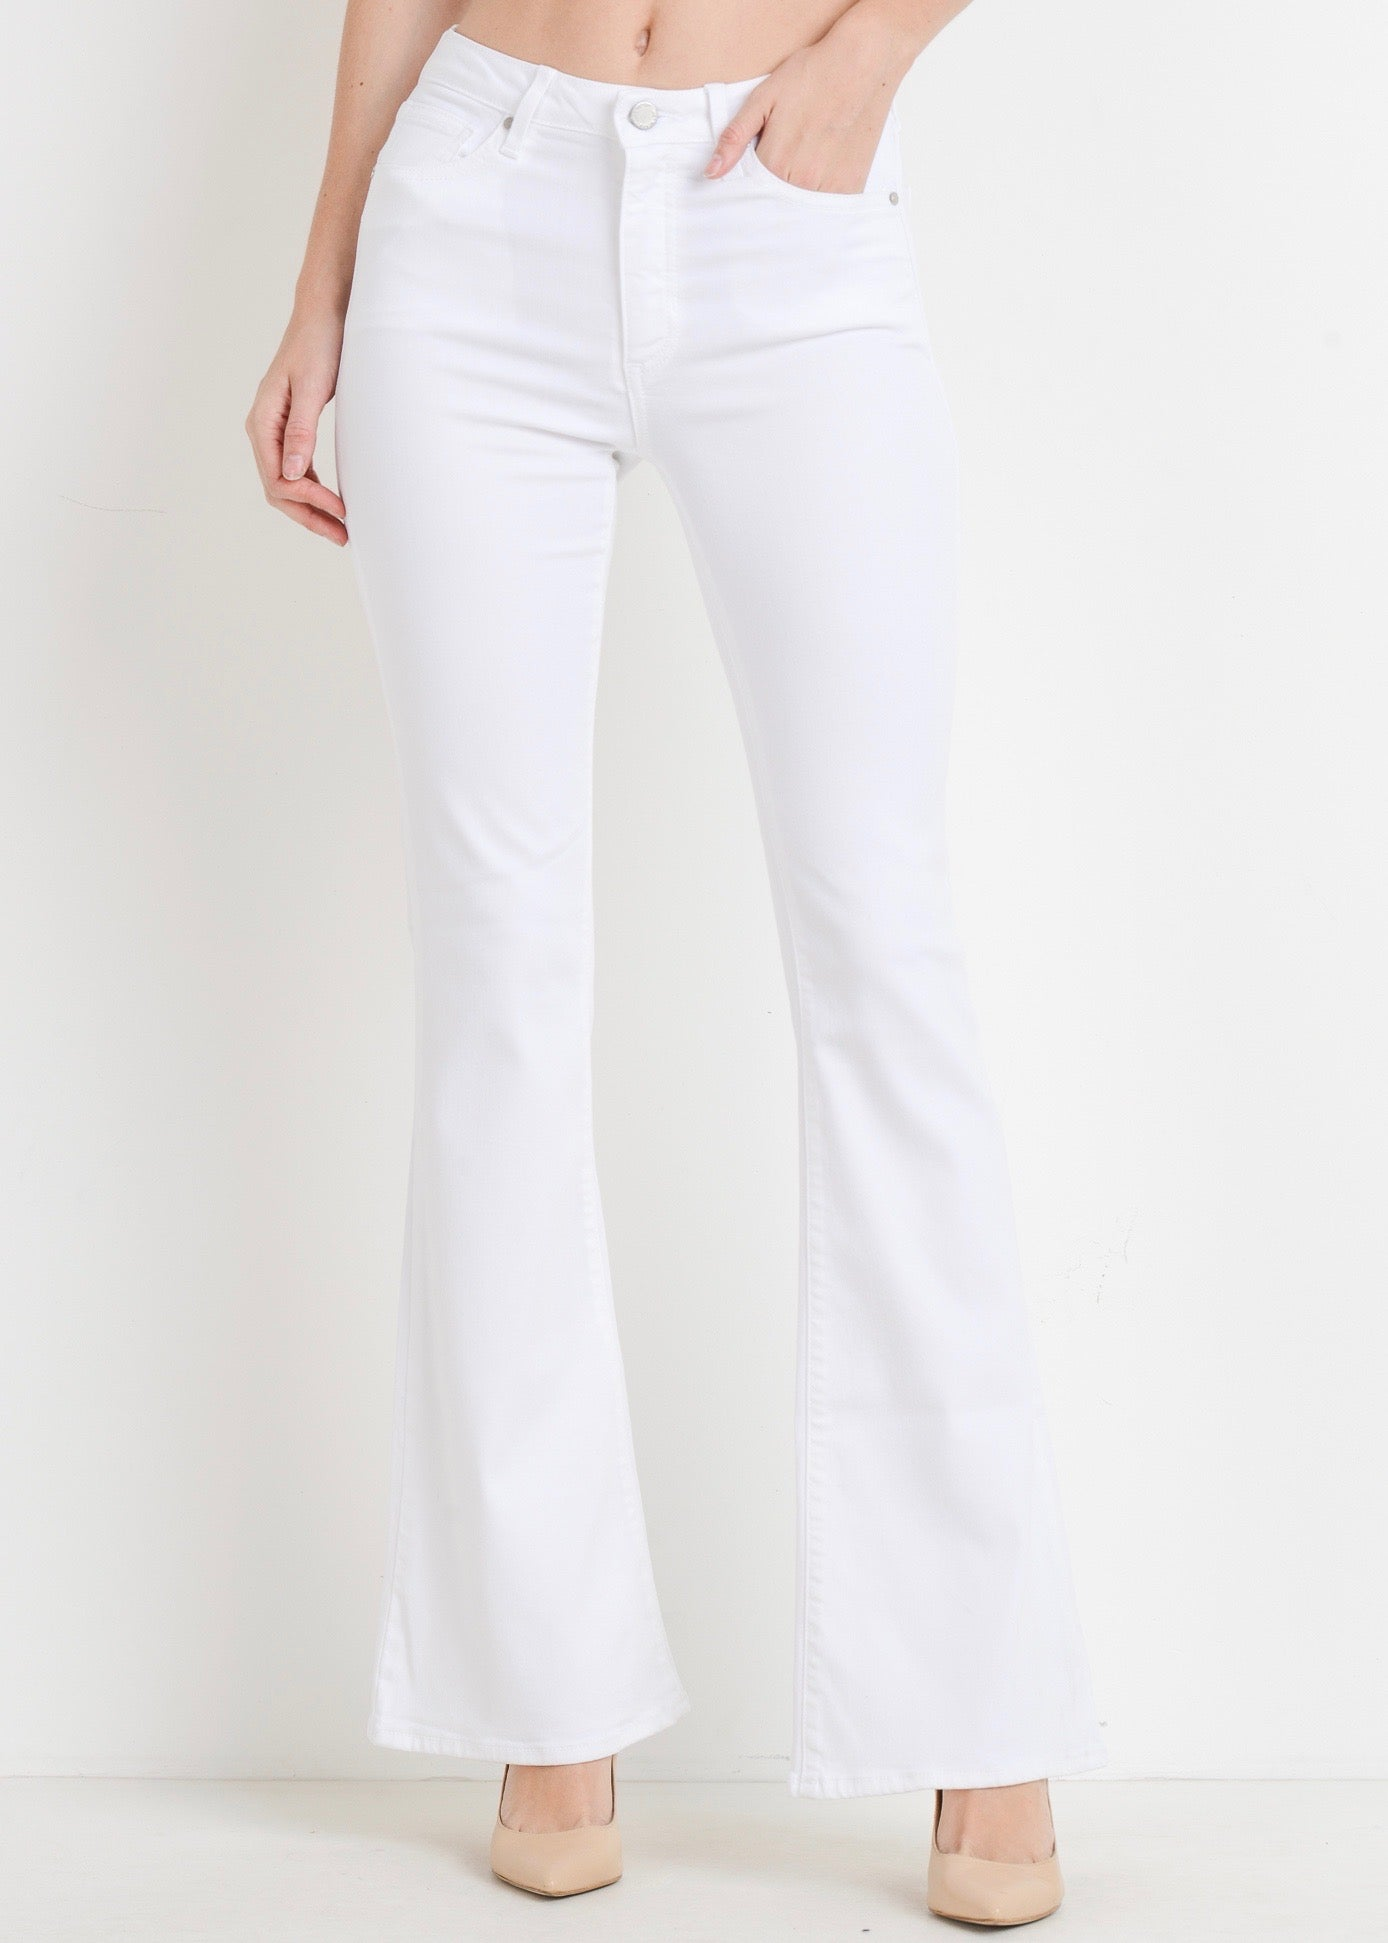 WHITE SKINNY FLARE JEANS